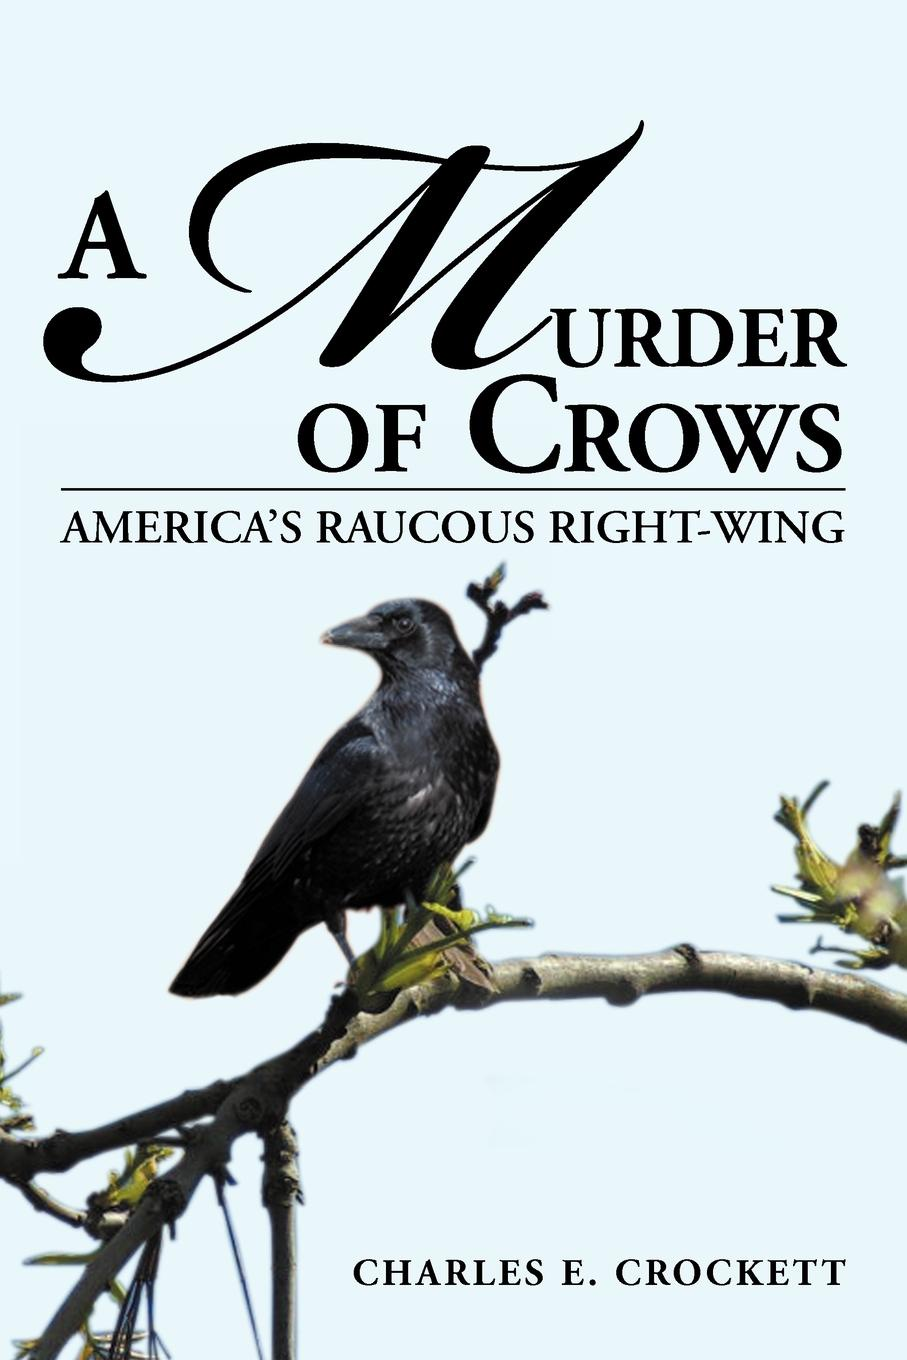 CHARLES E. CROCKETT A MURDER OF CROWS. AMERICA'S RAUCOUS RIGHT-WING nicole e woolaston fortune s wing second flight